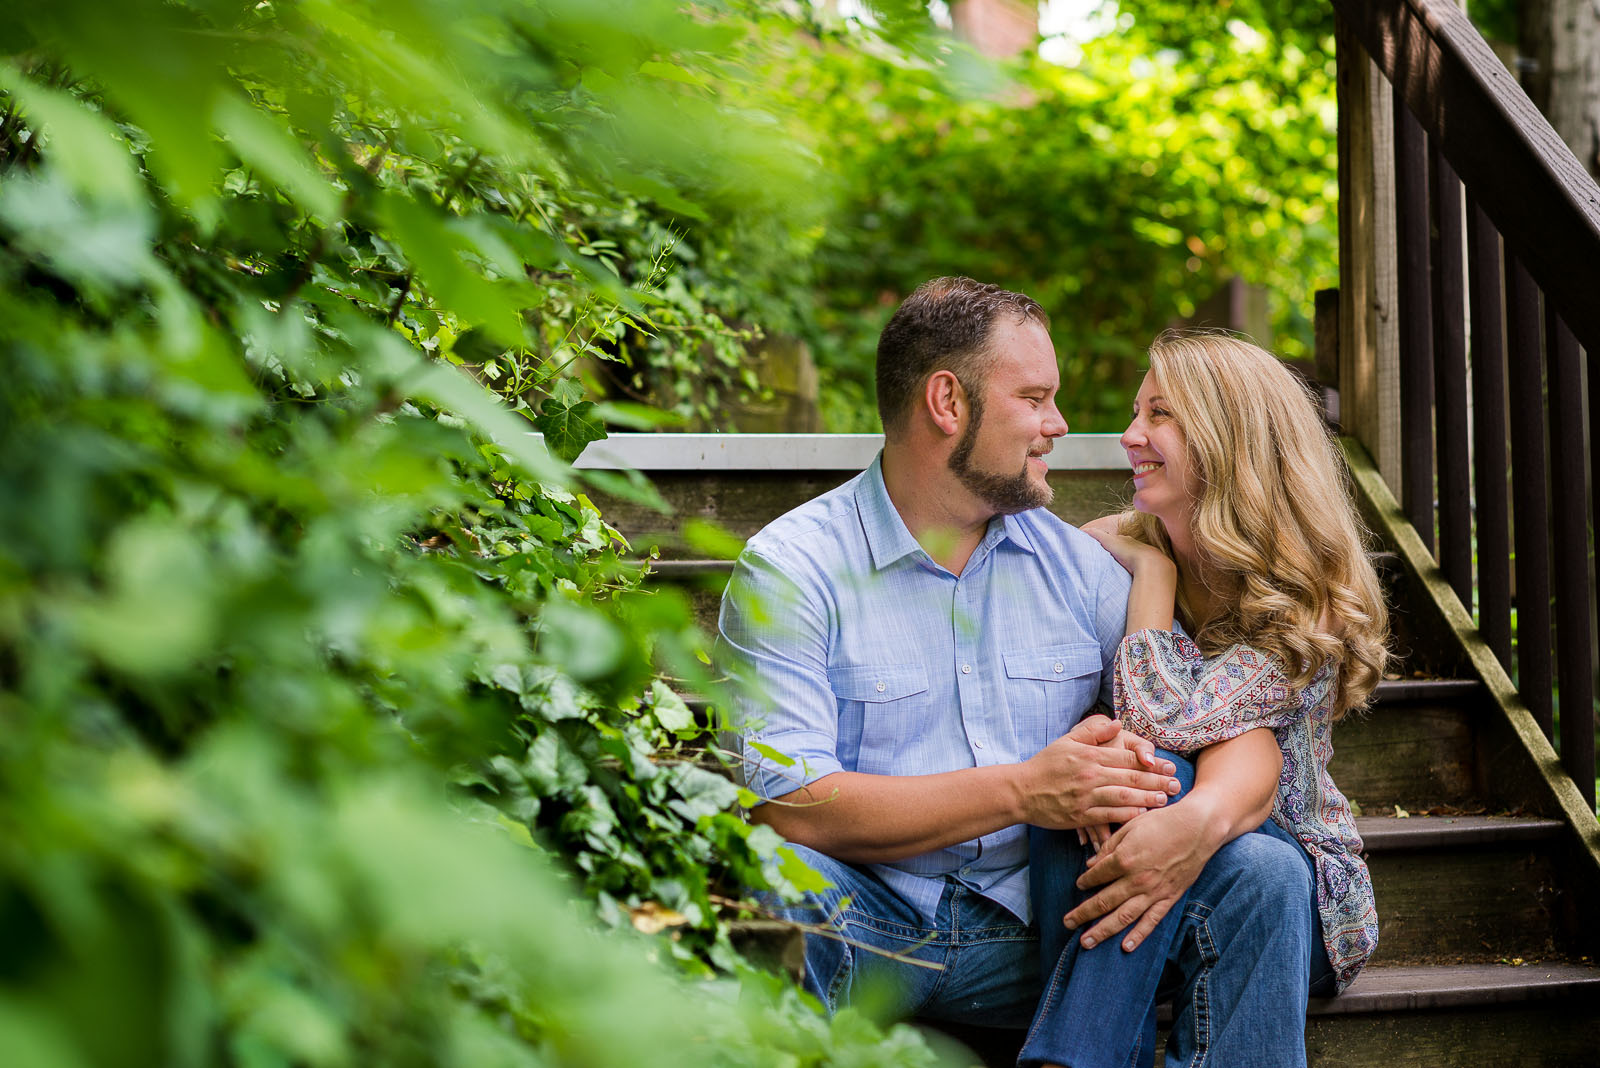 Eric_and_Christy_Photography_Blog_Kelly_Matt_Engagement-9